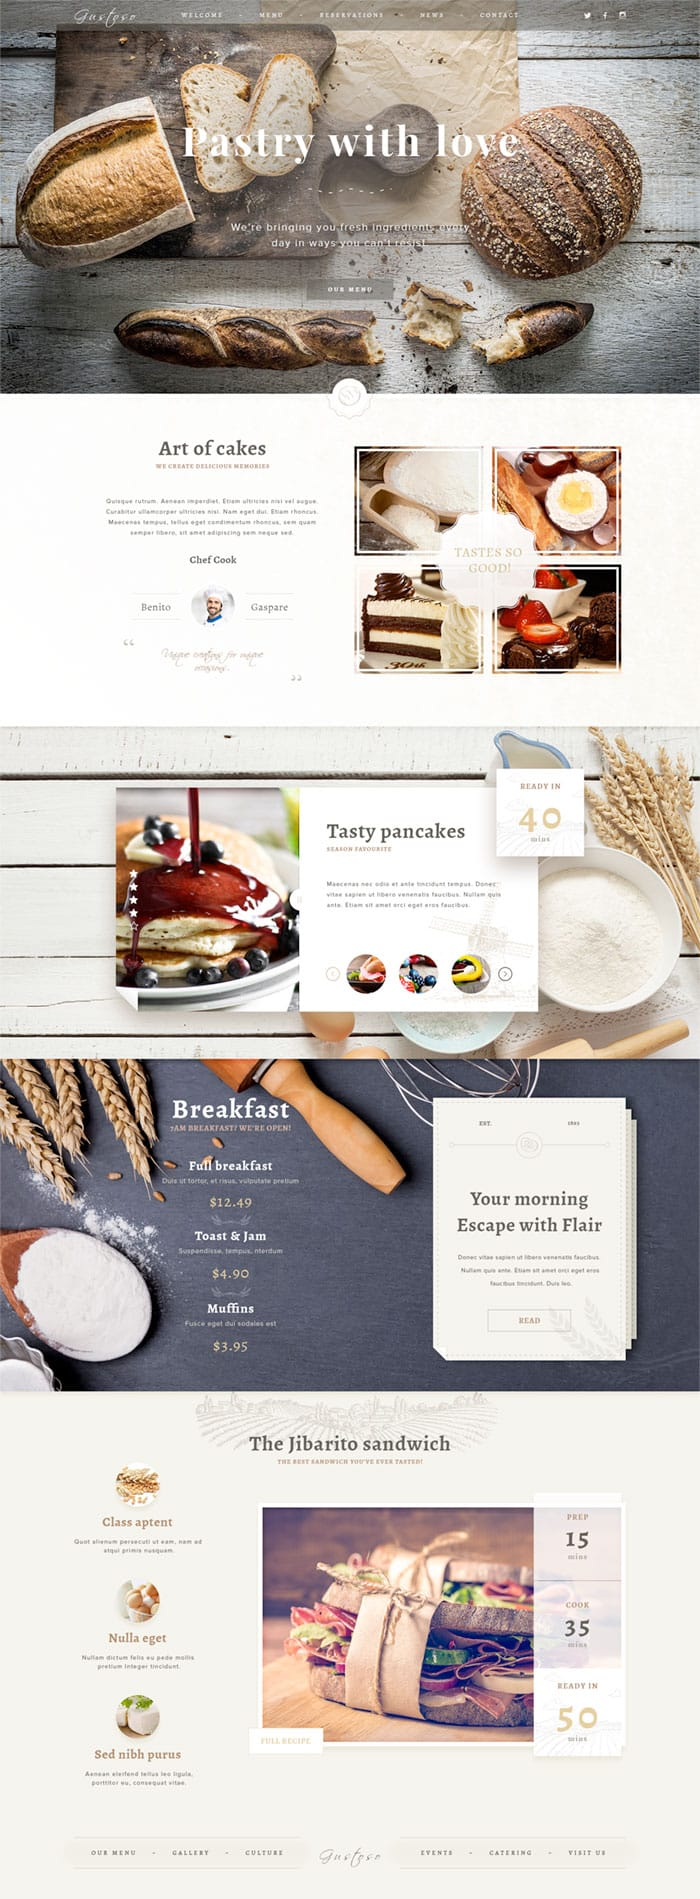 Bakery Photoshop website template